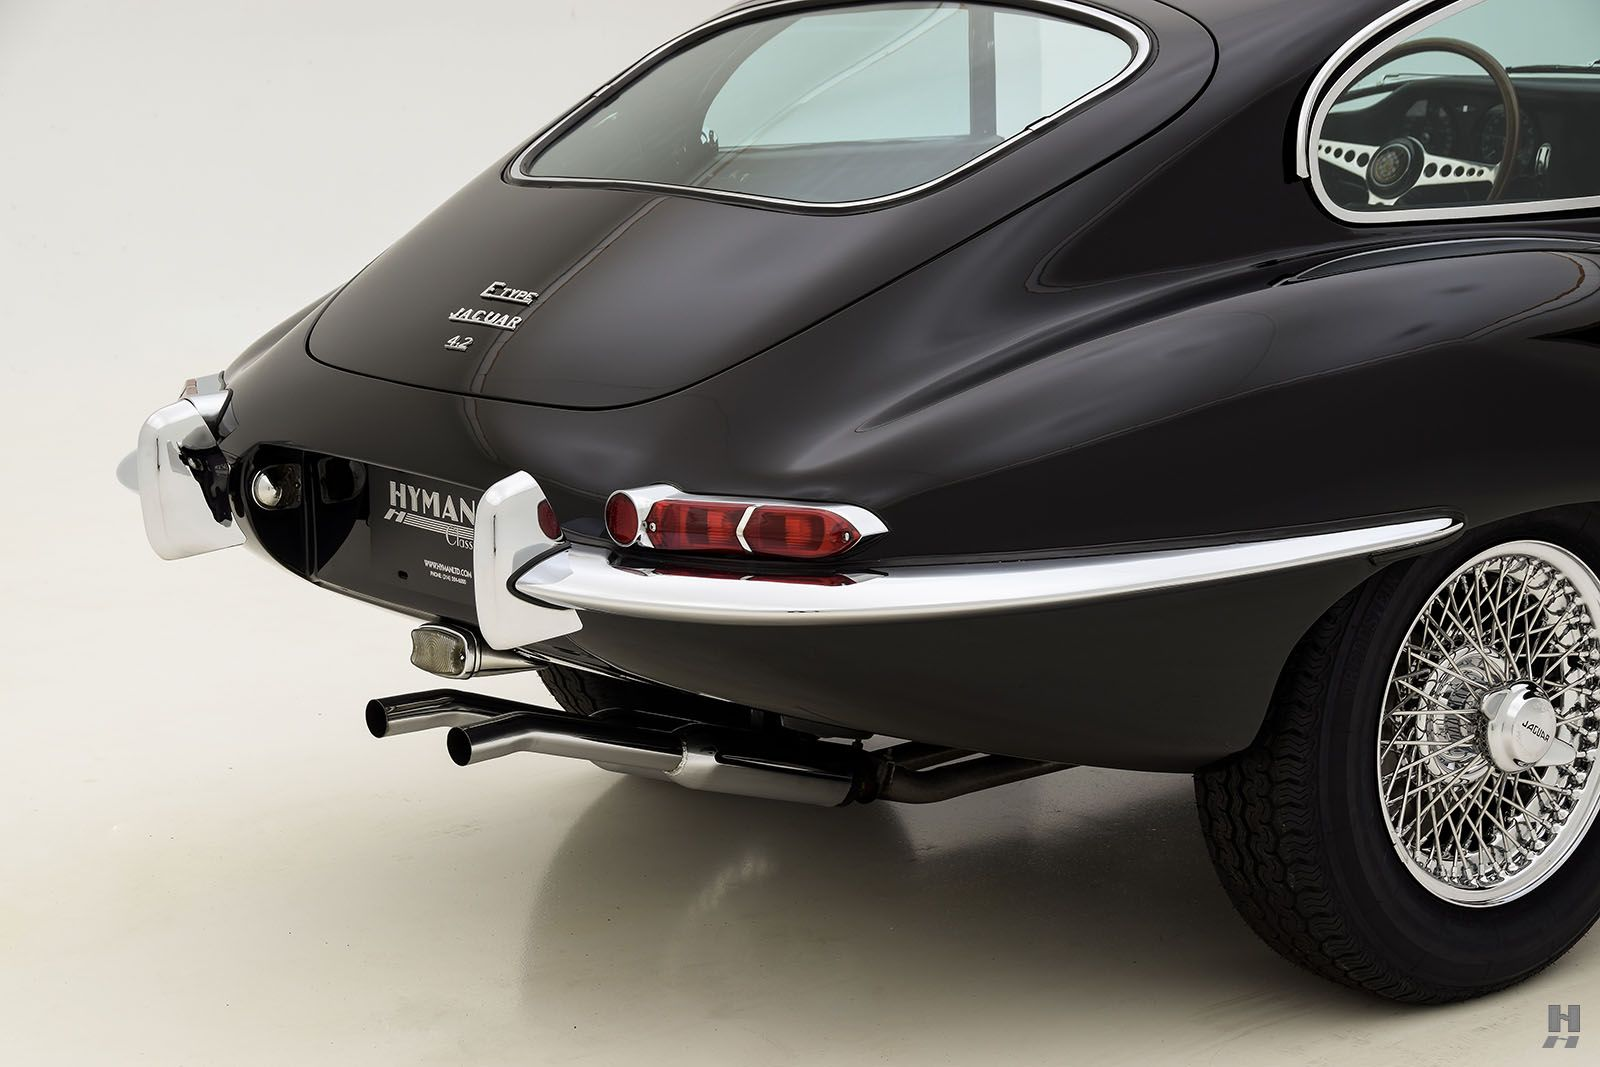 1965 Jaguar XKE Coupe Classic Car For Sale | Buy 1965 Jaguar XKE ...